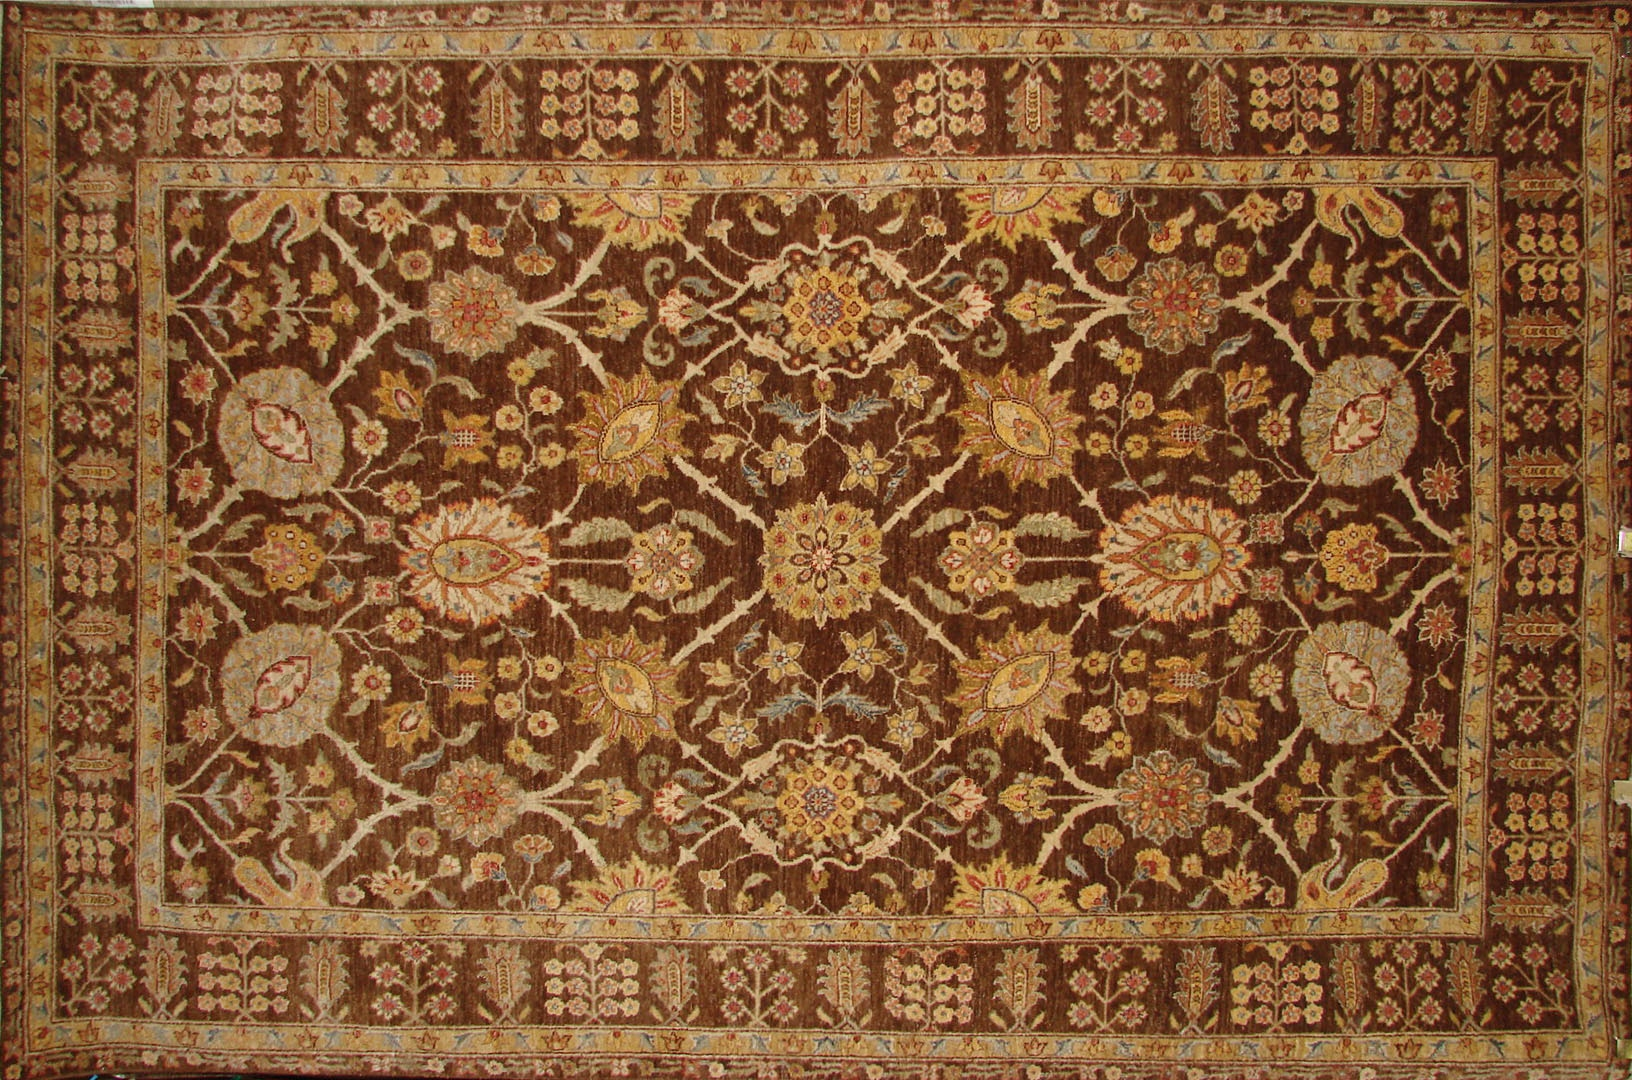 6x9 Traditional Hand Knotted  Area Rug - MR017974